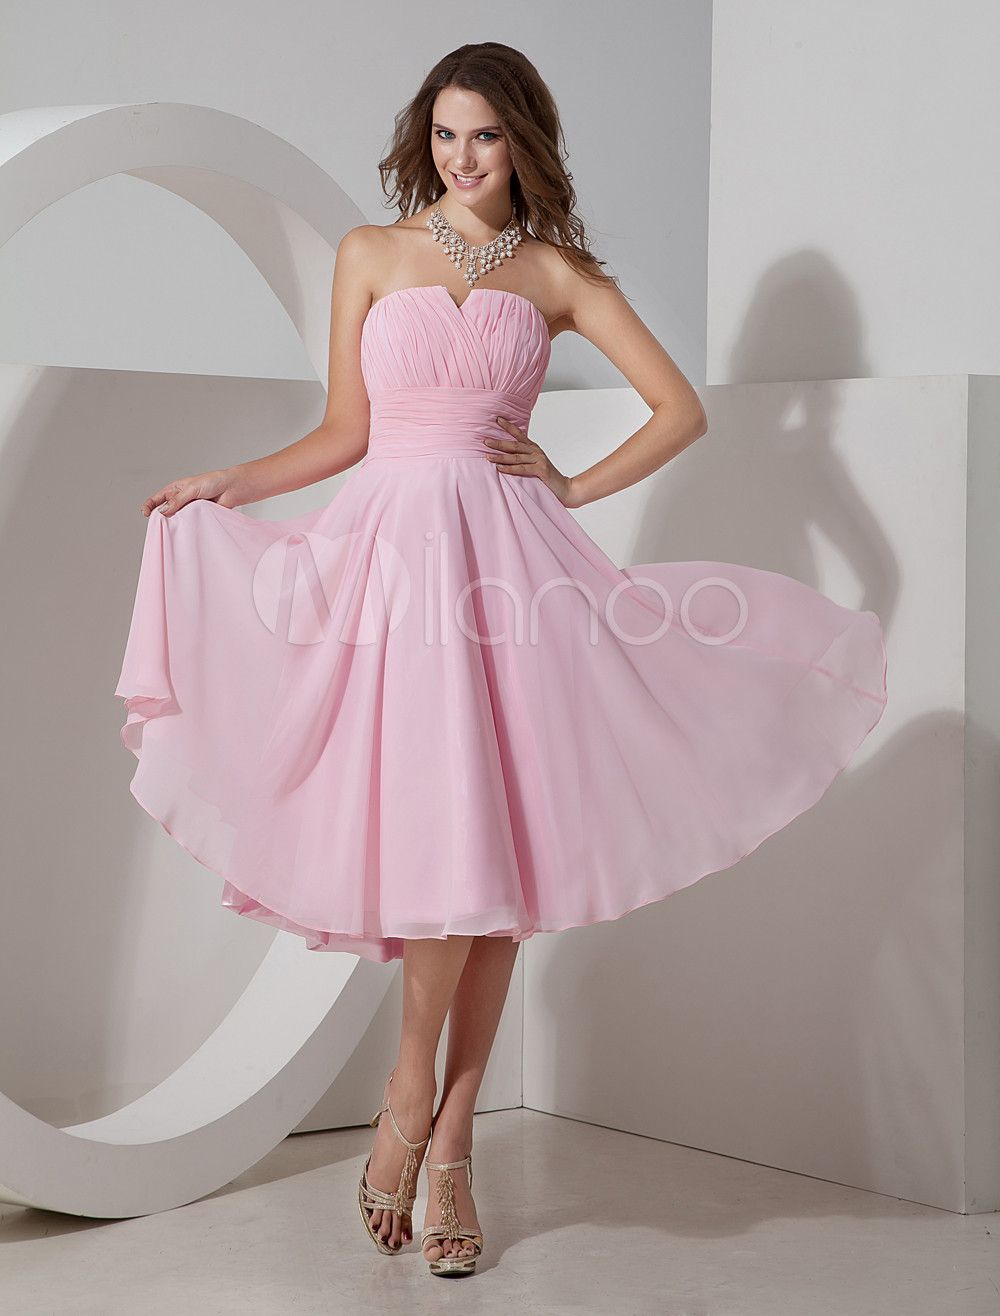 8499 40off lovely pleated wrapped chiffon bridesmaid dress 8499 40off lovely pleated wrapped chiffon bridesmaid dress ombrellifo Images